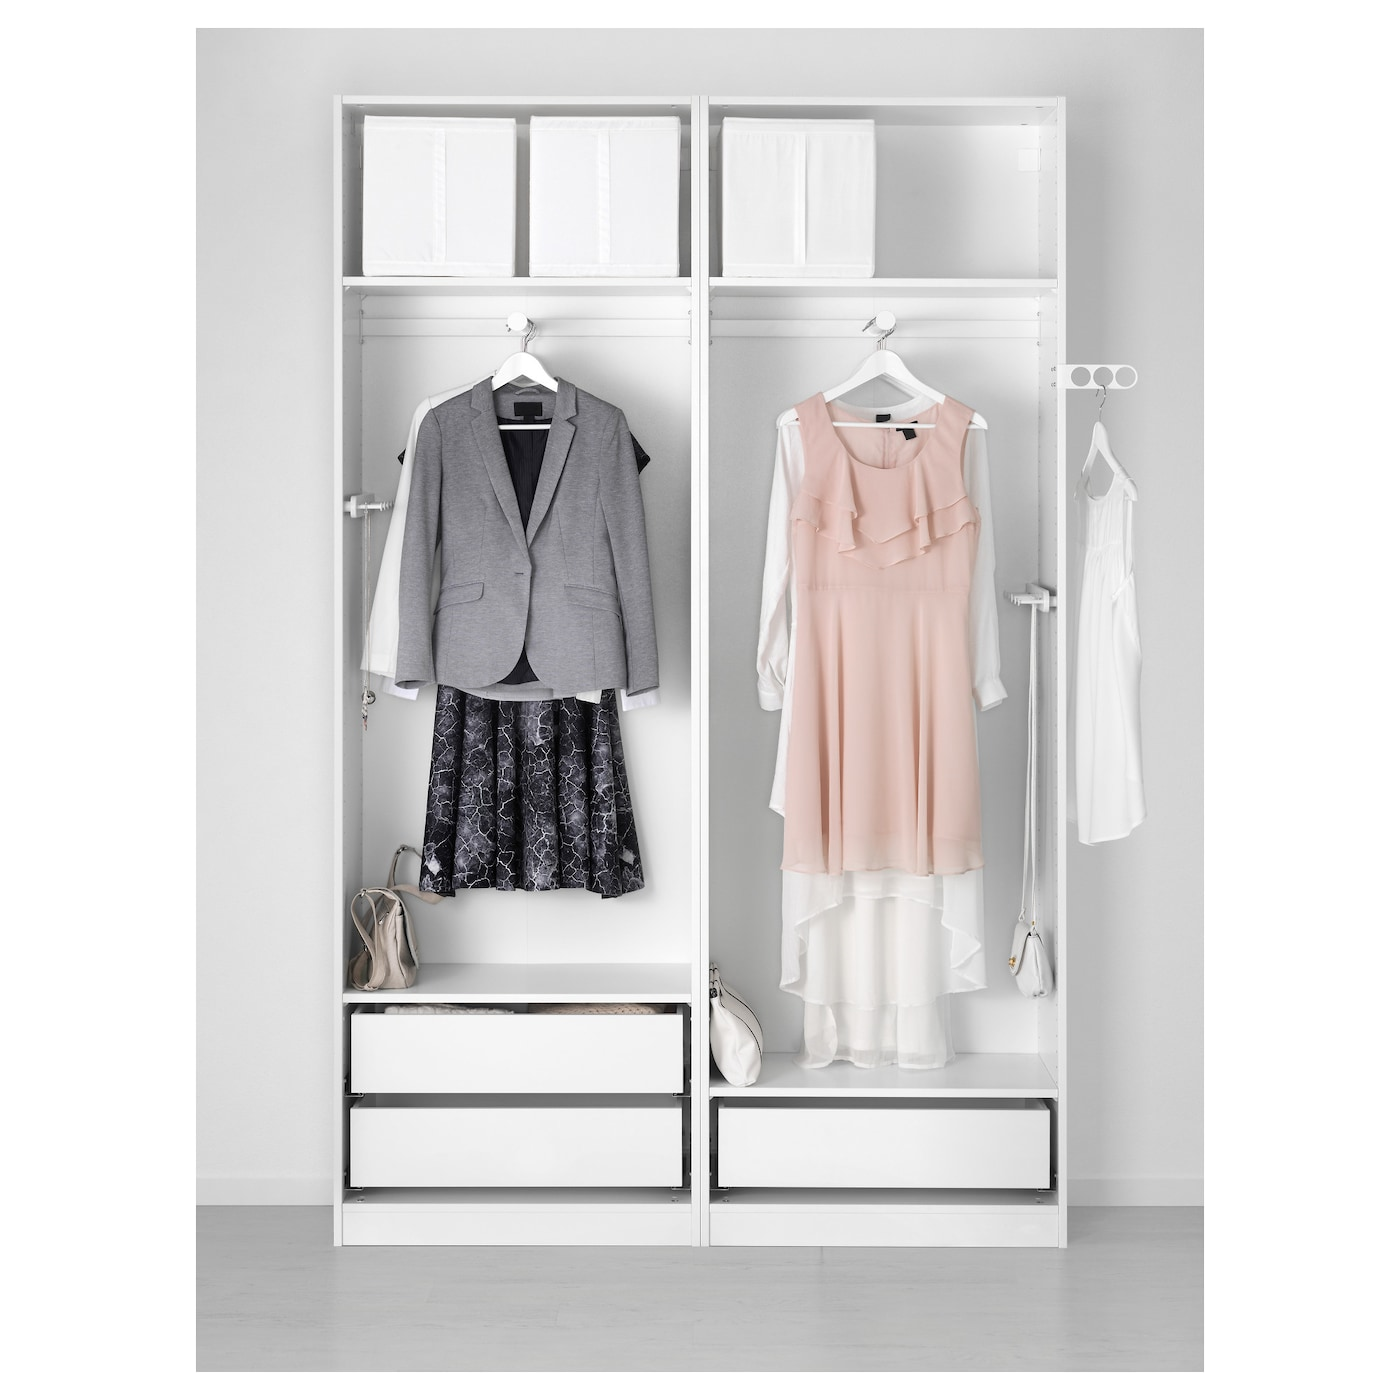 pax armoire penderie blanc auli miroir 150x44x236 cm ikea. Black Bedroom Furniture Sets. Home Design Ideas